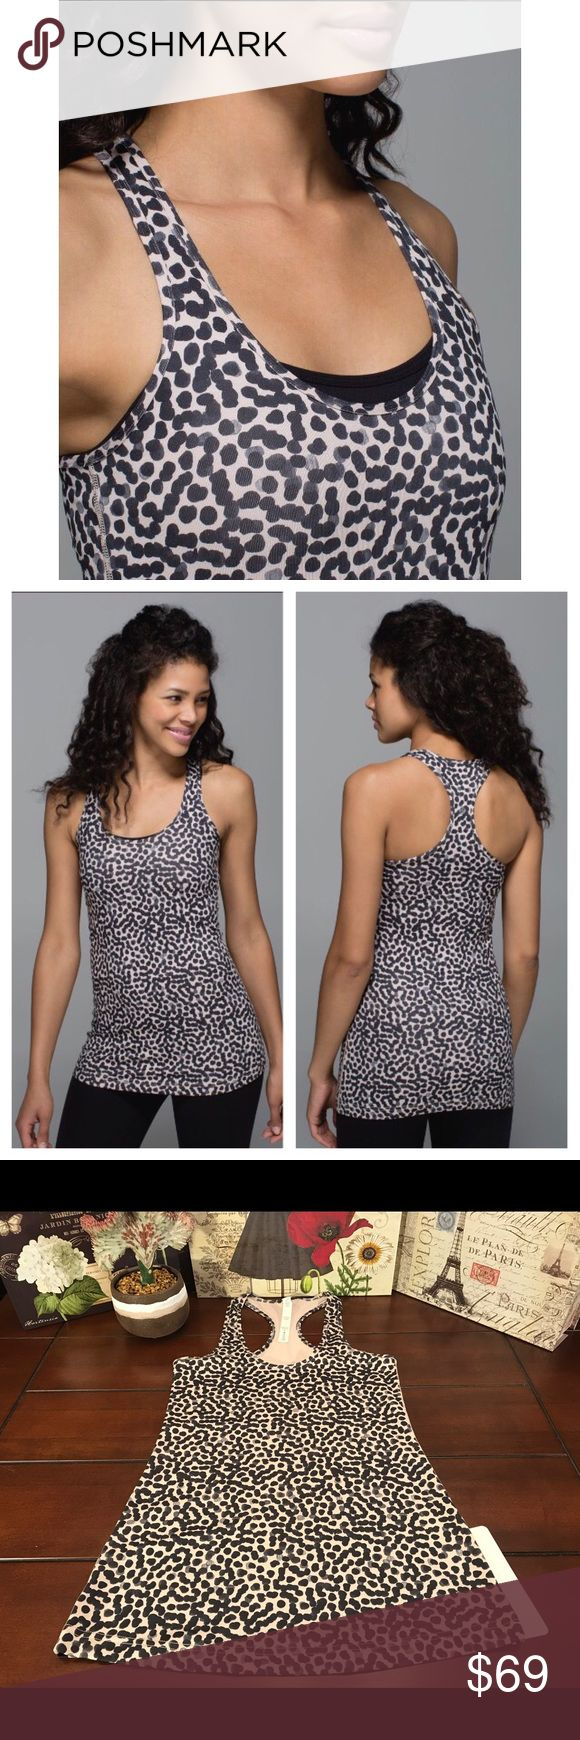 Lululemon Cool Racerback CRB Tank-Ace Spot, Size 6 Lululemon Cool Racerback CRB Luon Tank-Ace Spot Grain, Size 6  Brand new with tag! ☺The print is Ace Spot Grain (cream with black dots). Made of Luon Light and Lycra.   Length-27 inches Bust- 27 inches (13.5 inches across) Material- Luon Light, Lycra lululemon athletica Tops Tank Tops